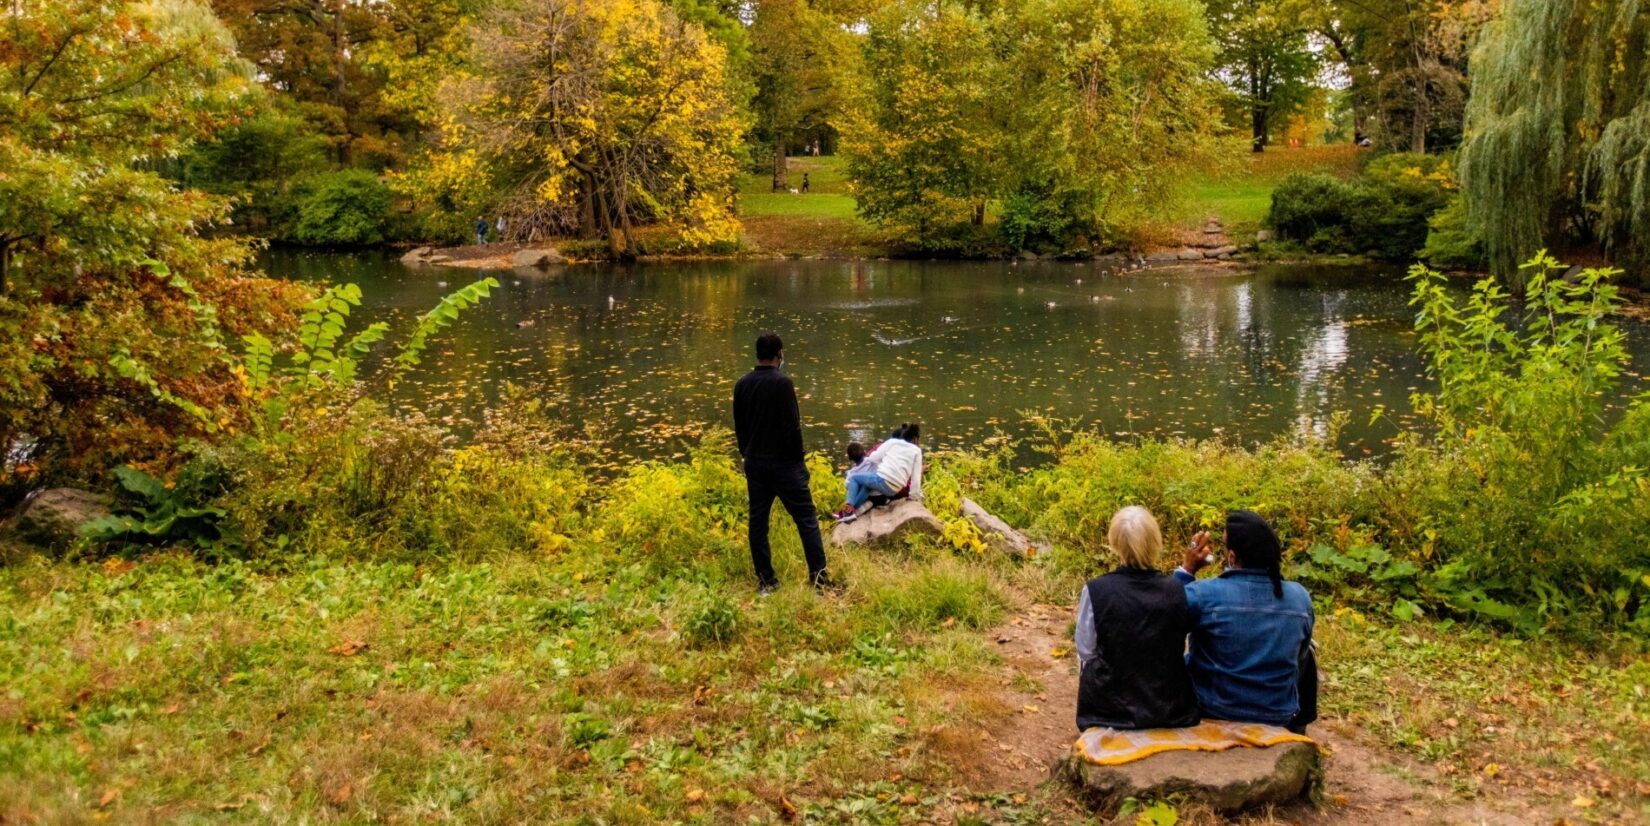 Park-goers take in the autumn scenery on the banks of the Pool.